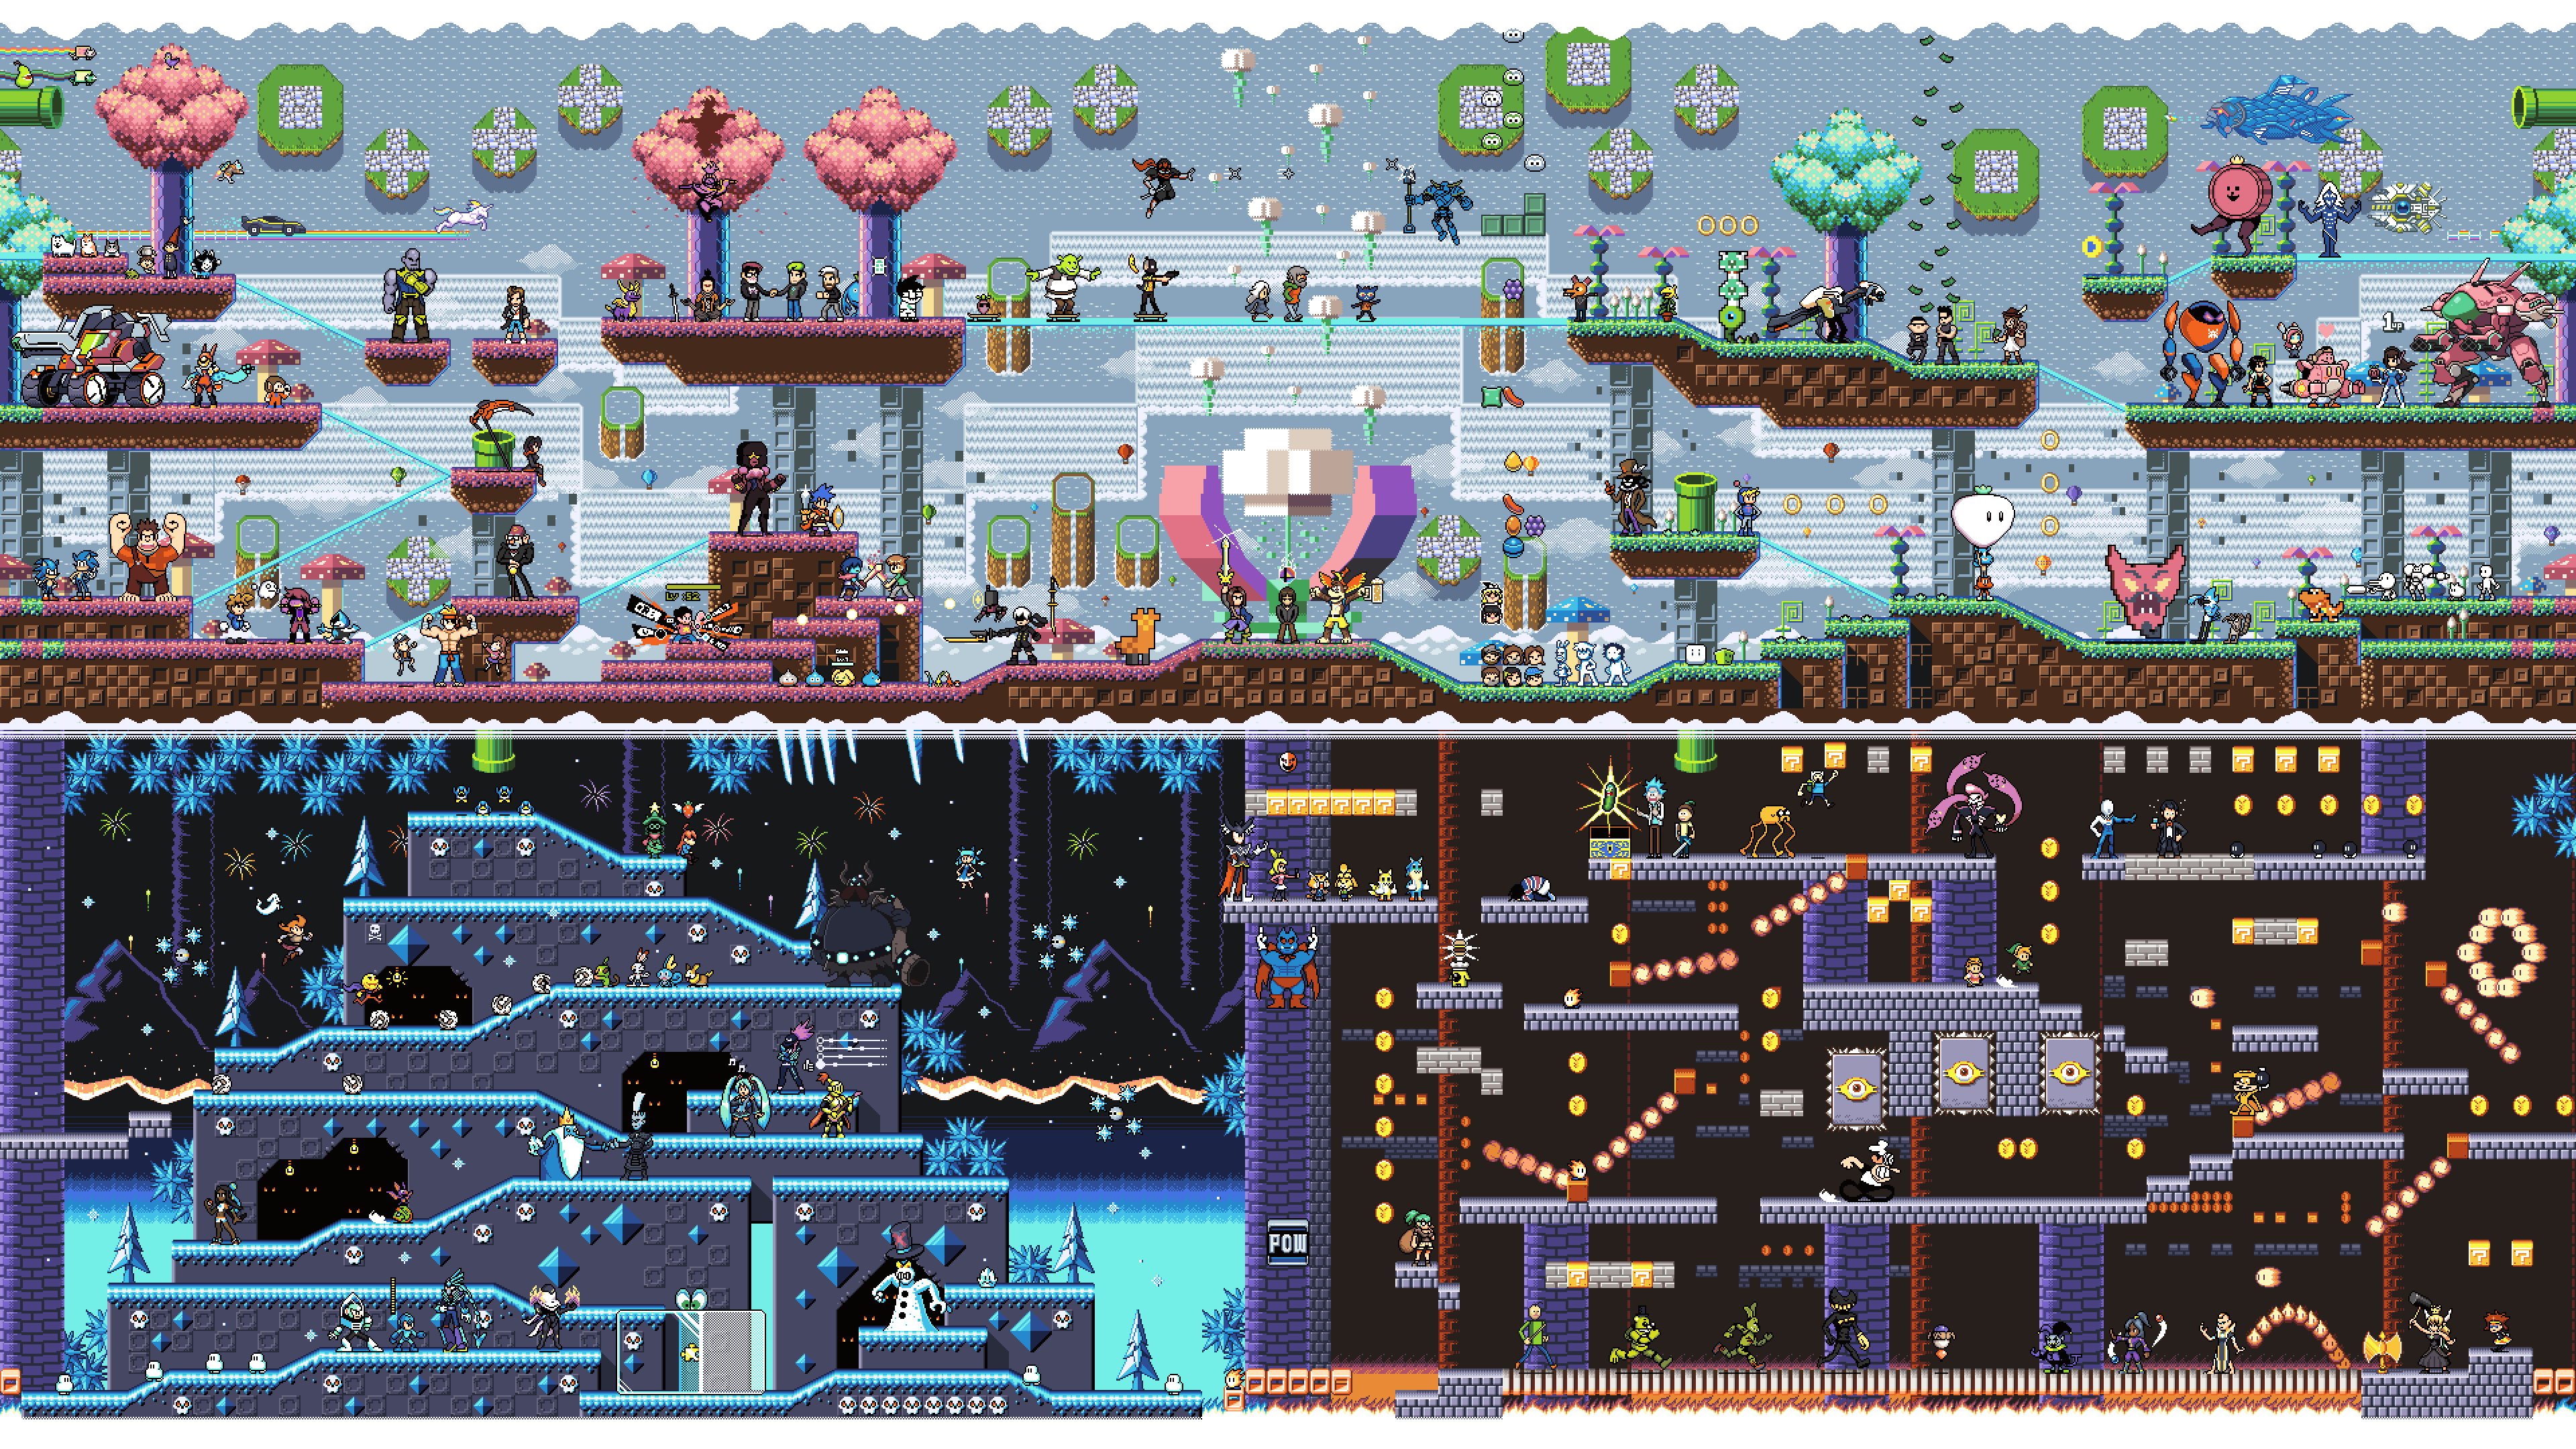 Summer Pixel and video game cultures